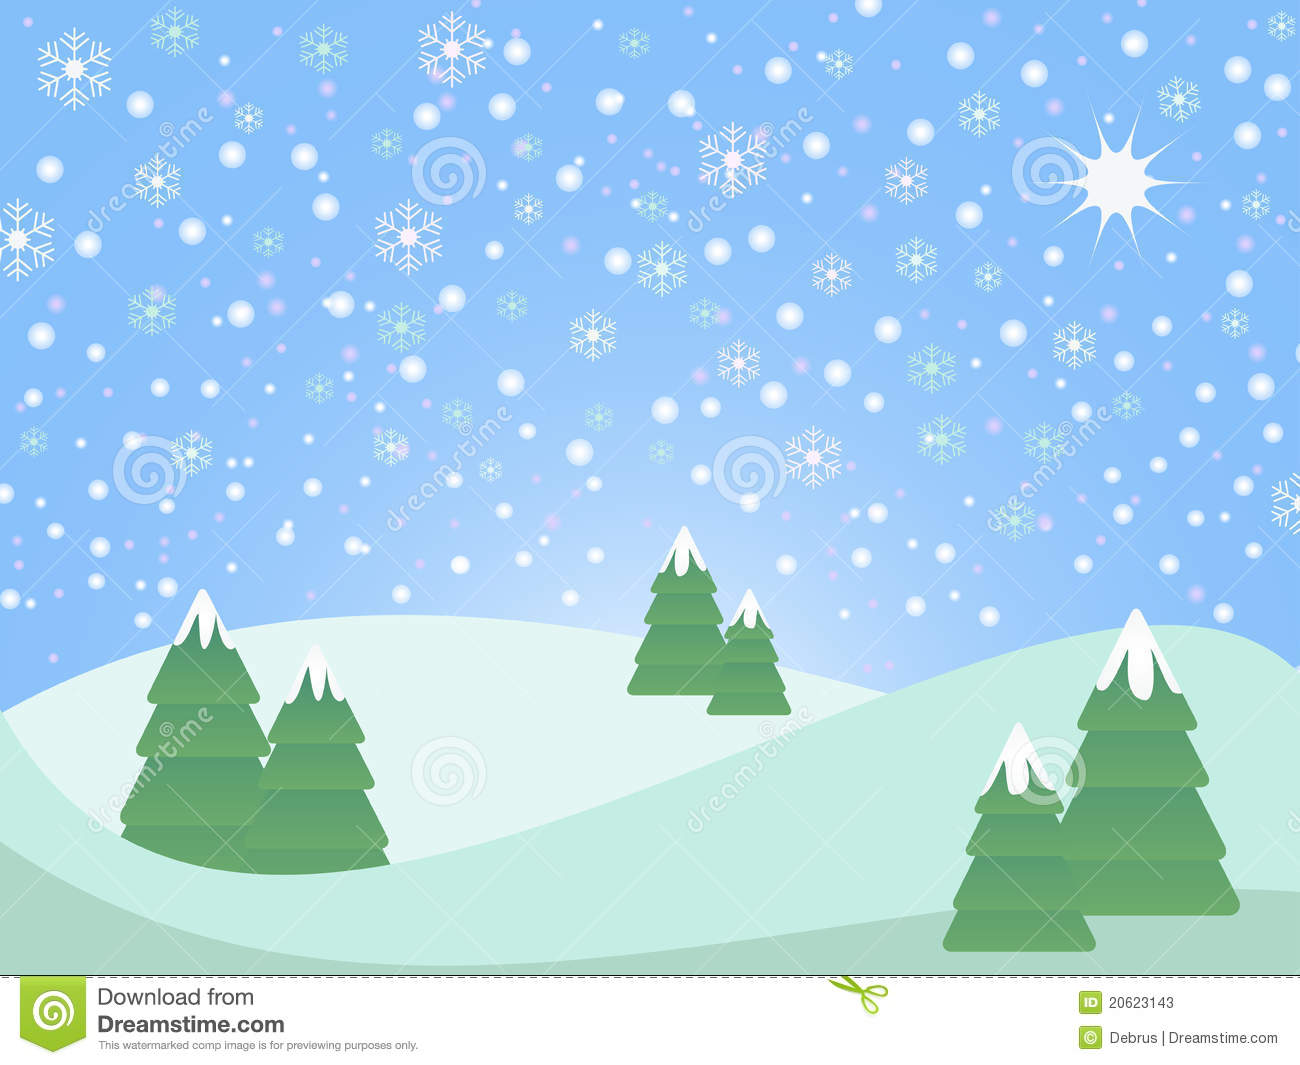 Snowy Christmas Landscape Stock Photos - Image: 20623143